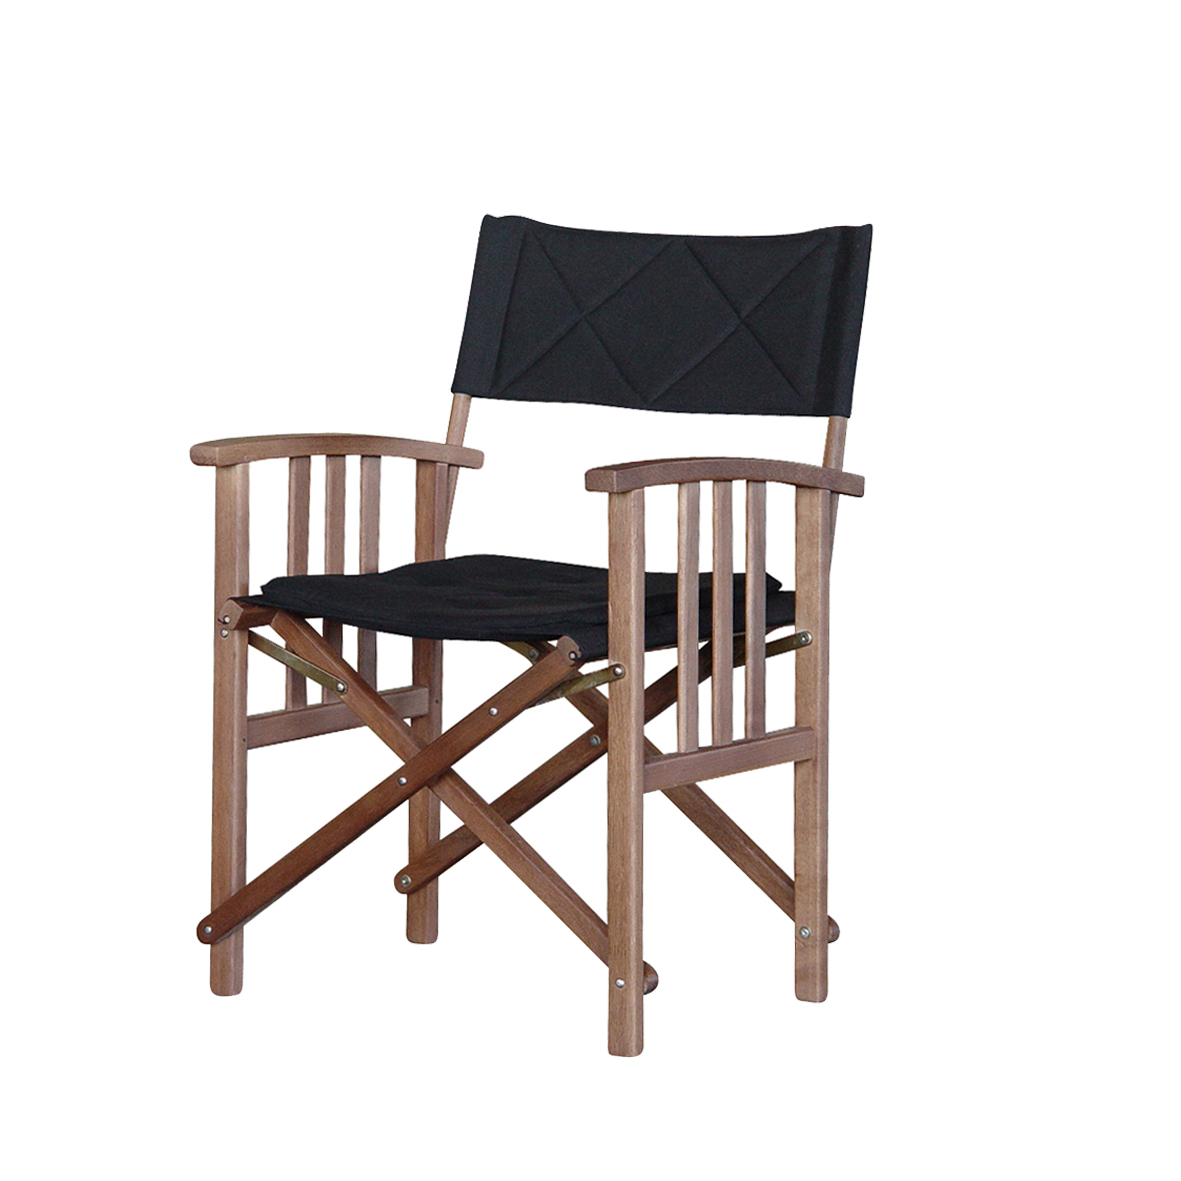 Black Directors Chair Savoy Directors Chair Black